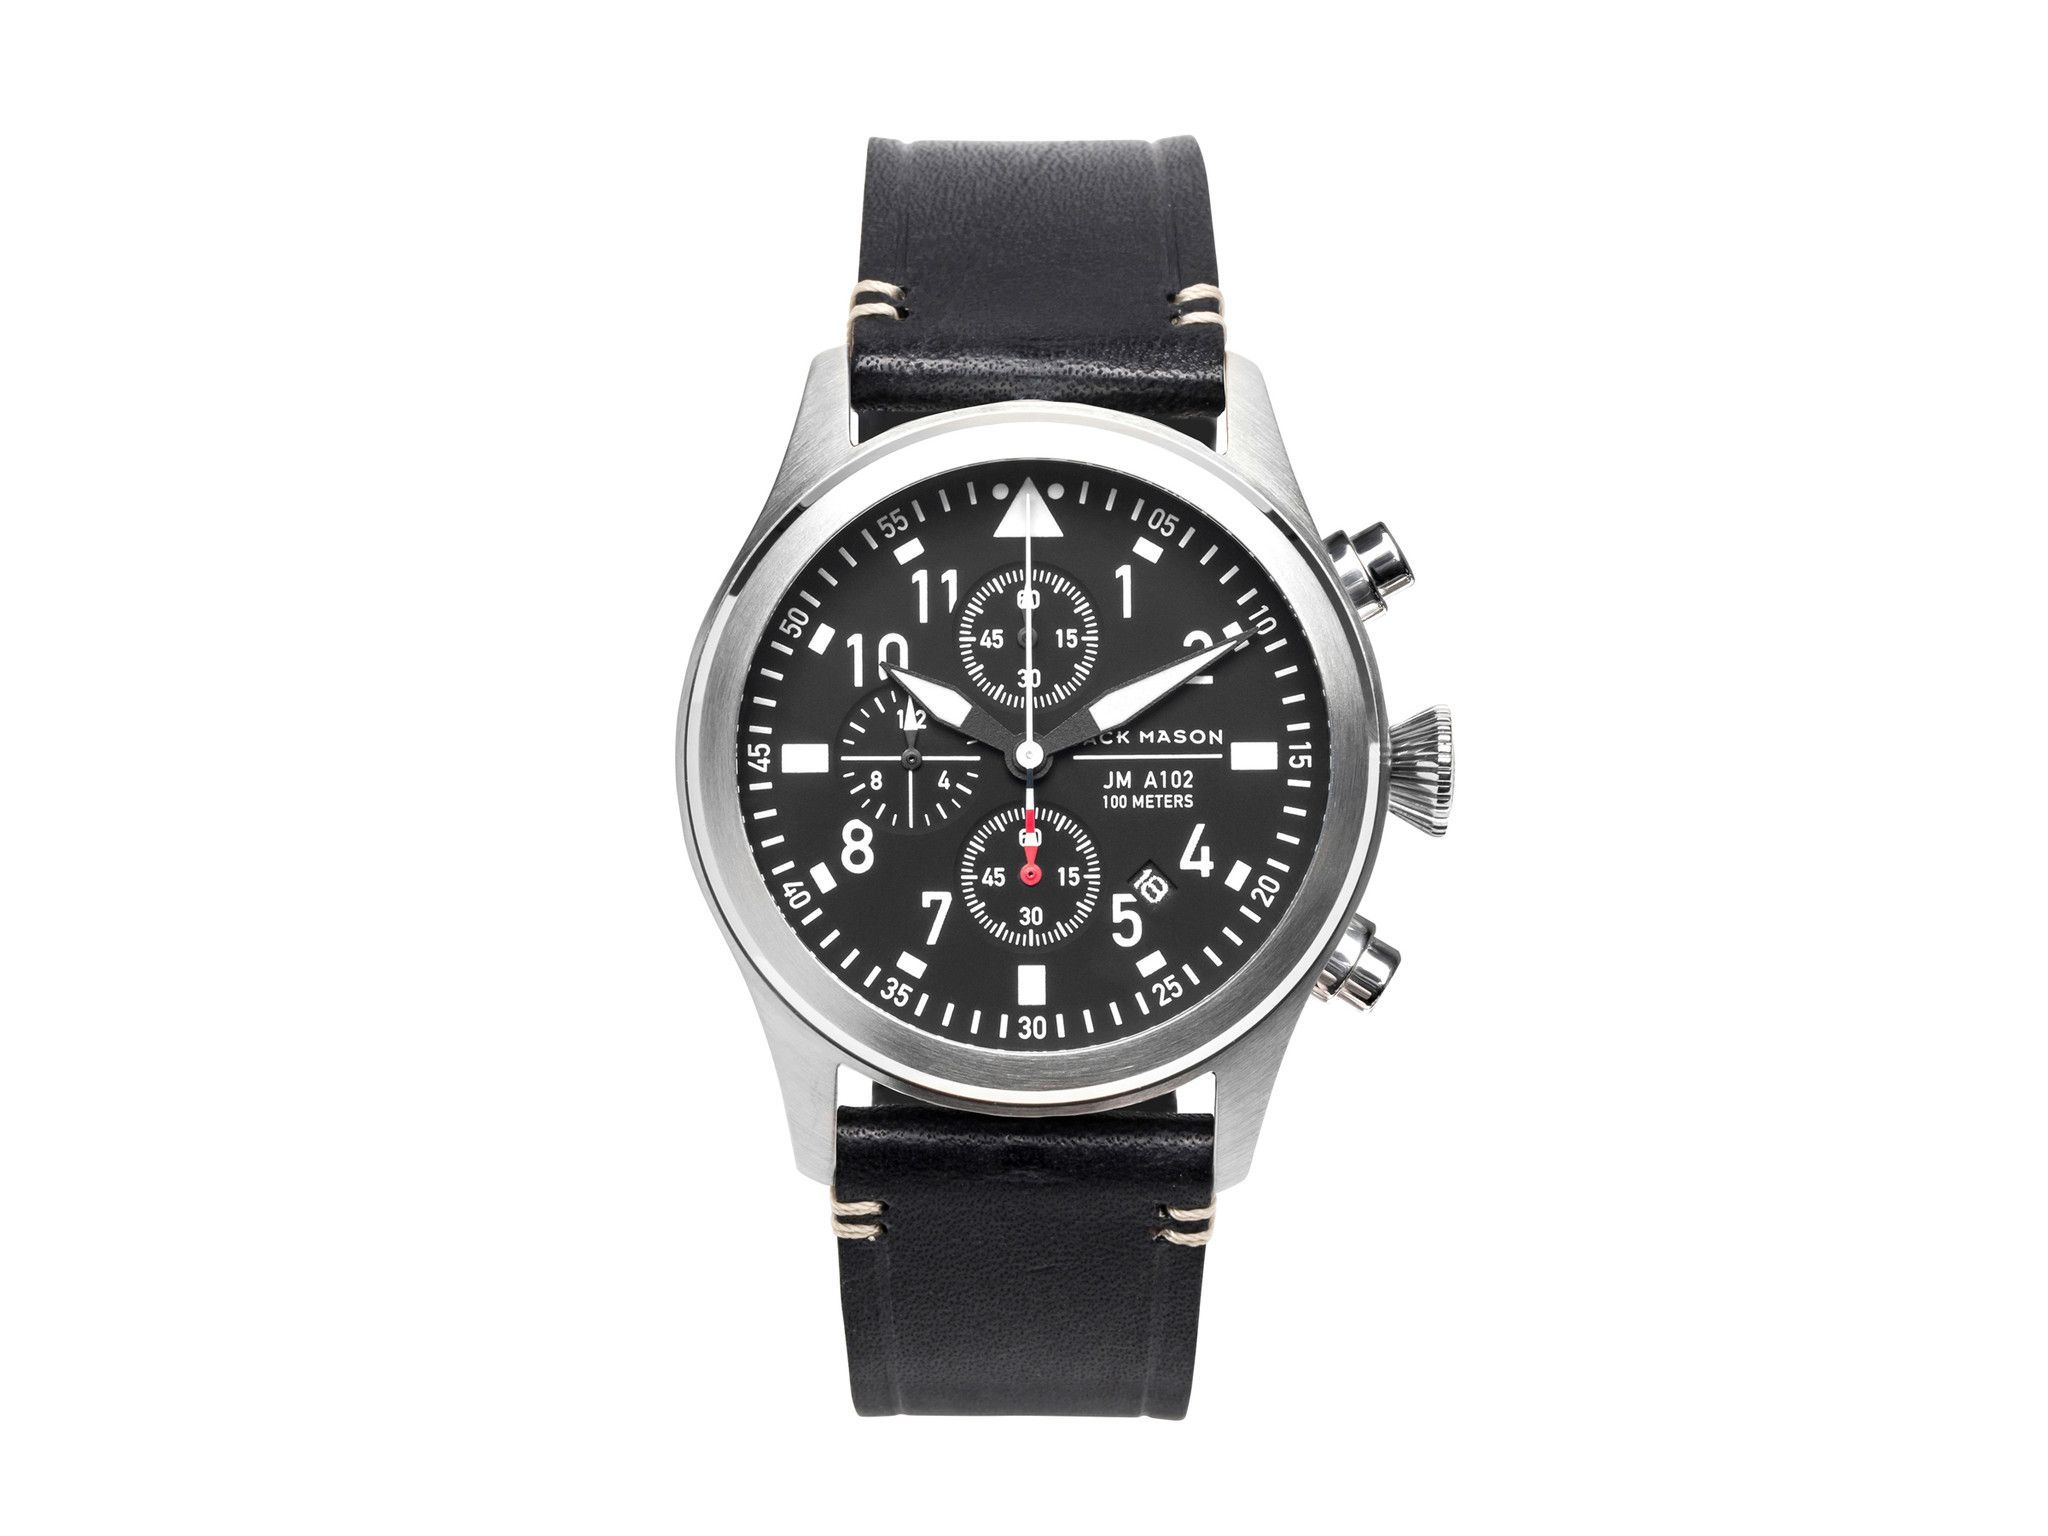 Jack Mason Brand JM-A102-015 Aviator Chronograph Watch